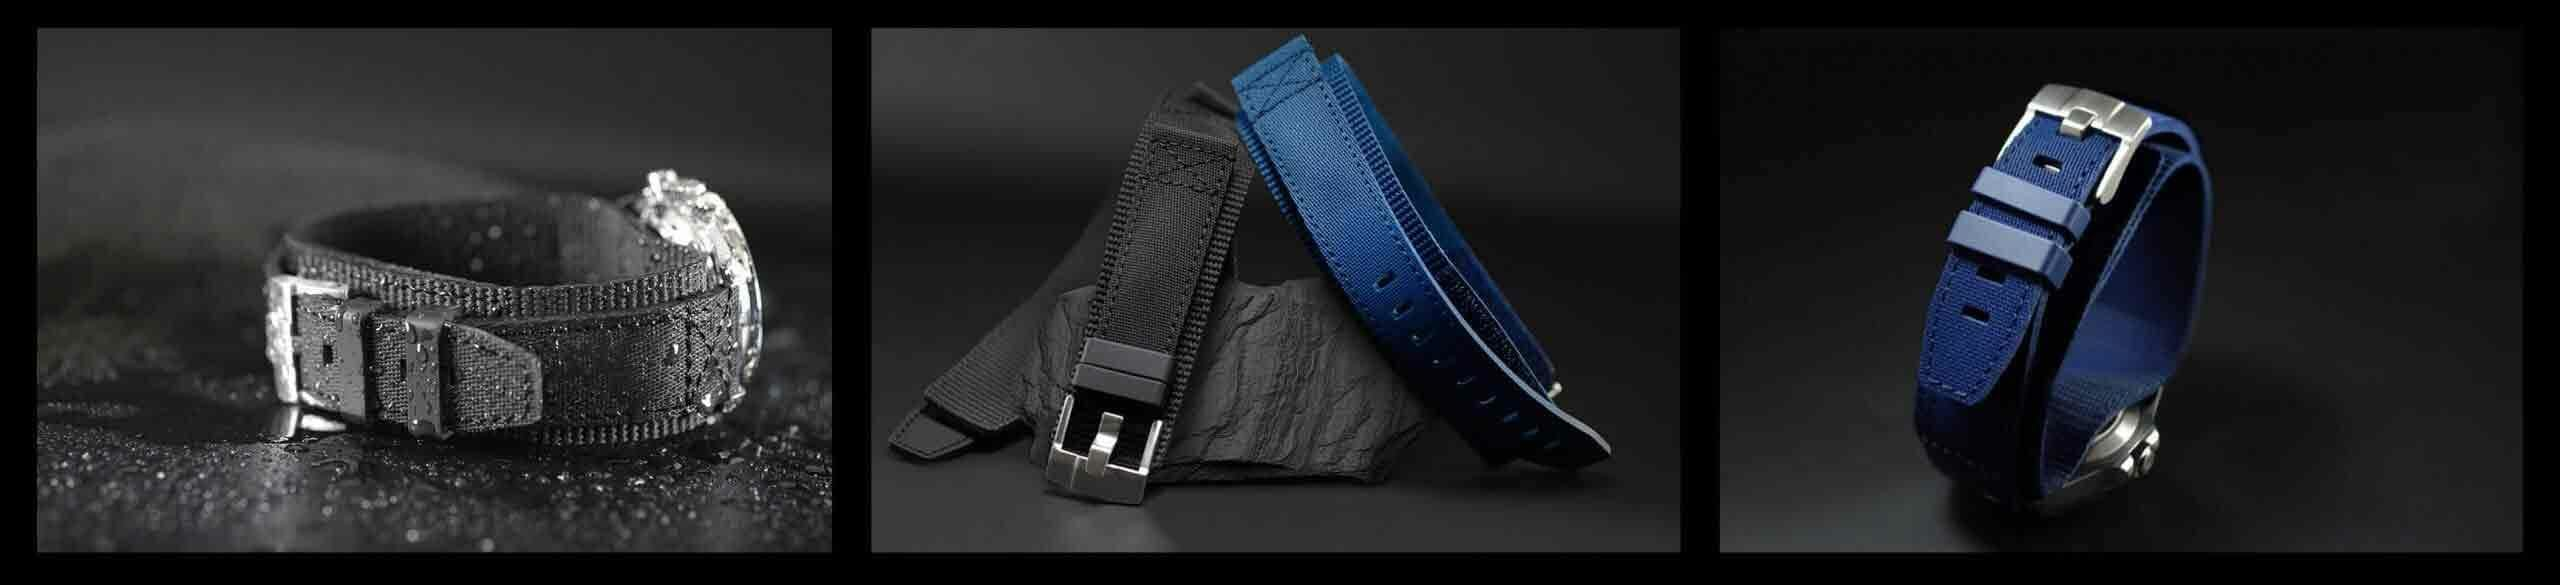 Tang Buckle Rubber Cuff Series